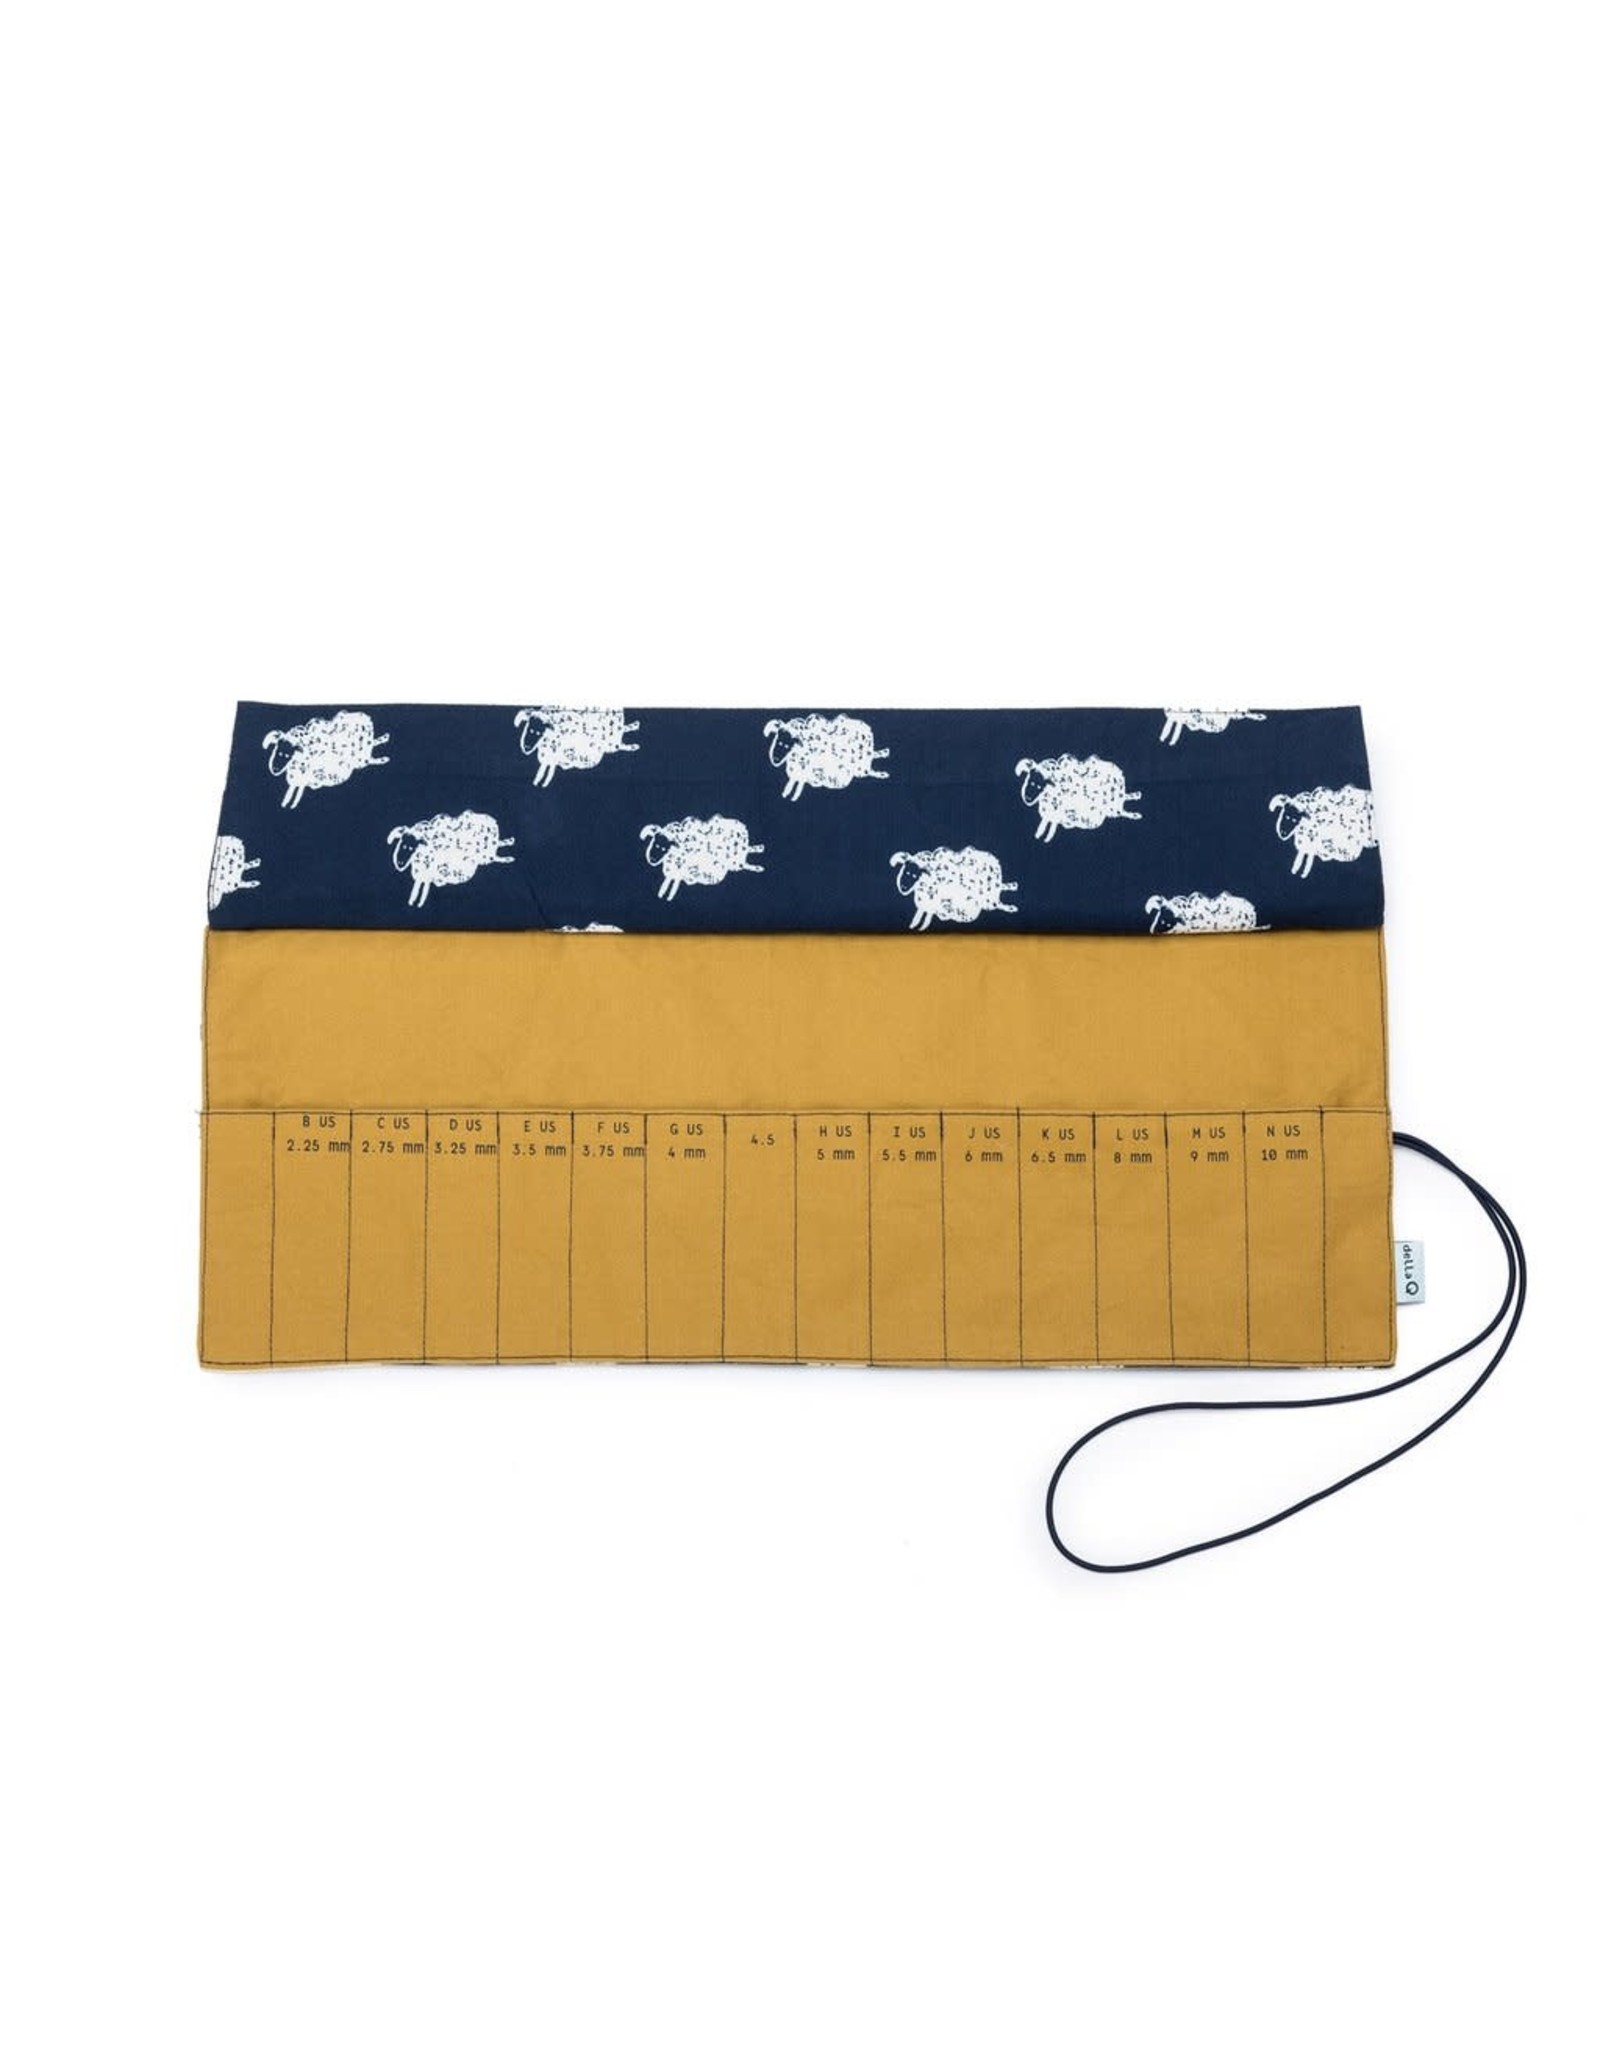 Della Q - Crochet Roll - Sheep/Gold Cotton